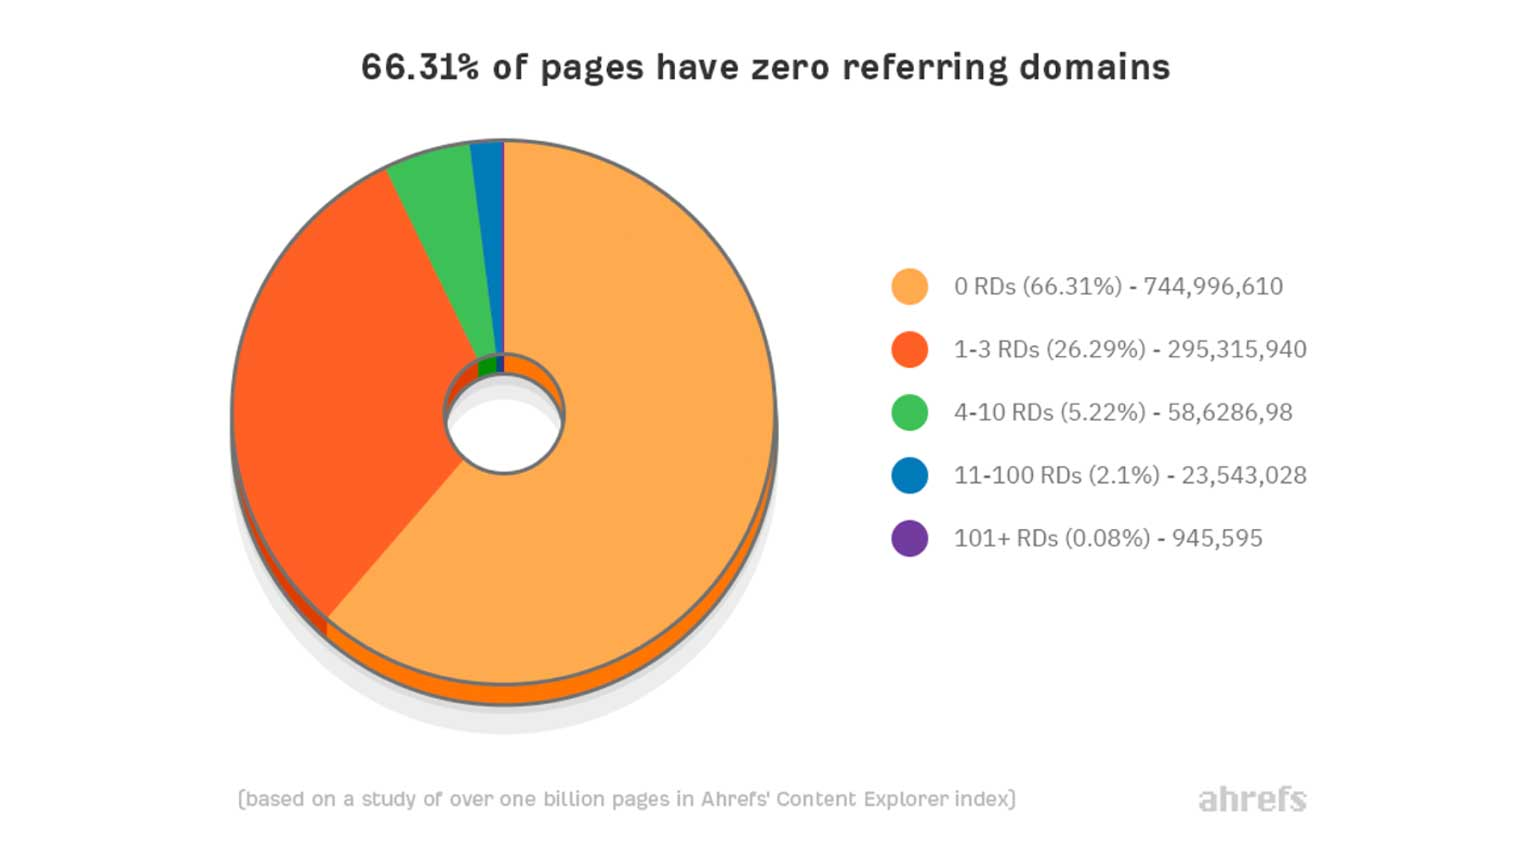 Pie chart showing that 66.31% of web pages have zero referring domains, with others having 1-3 to more than 101.